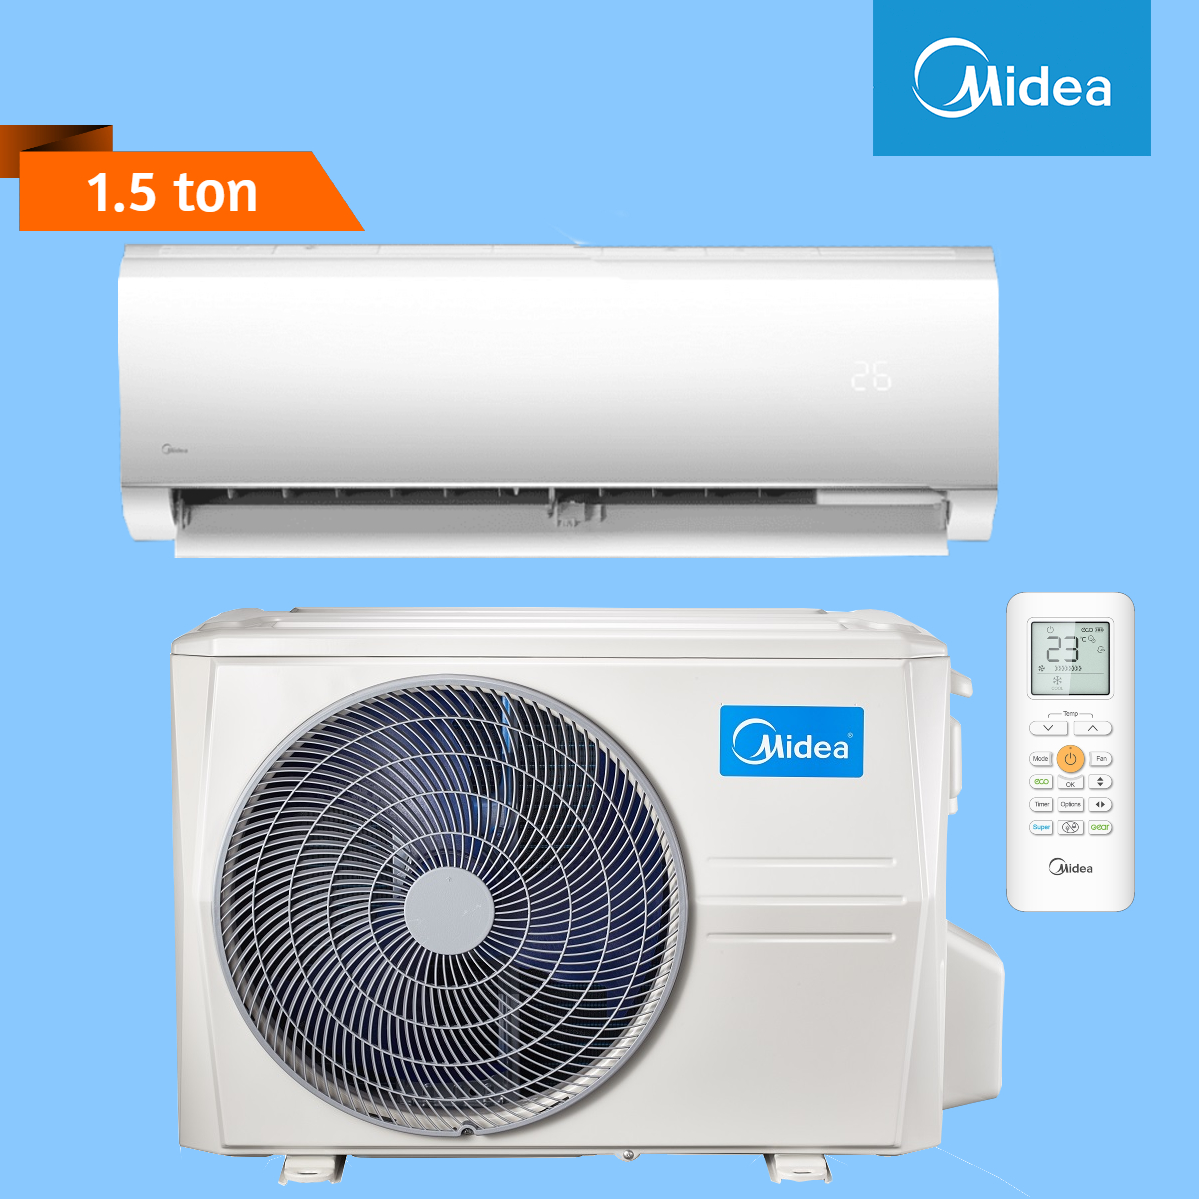 Midea Wall Mounted 1.5 Ton Air Conditioner (Blanc Series)